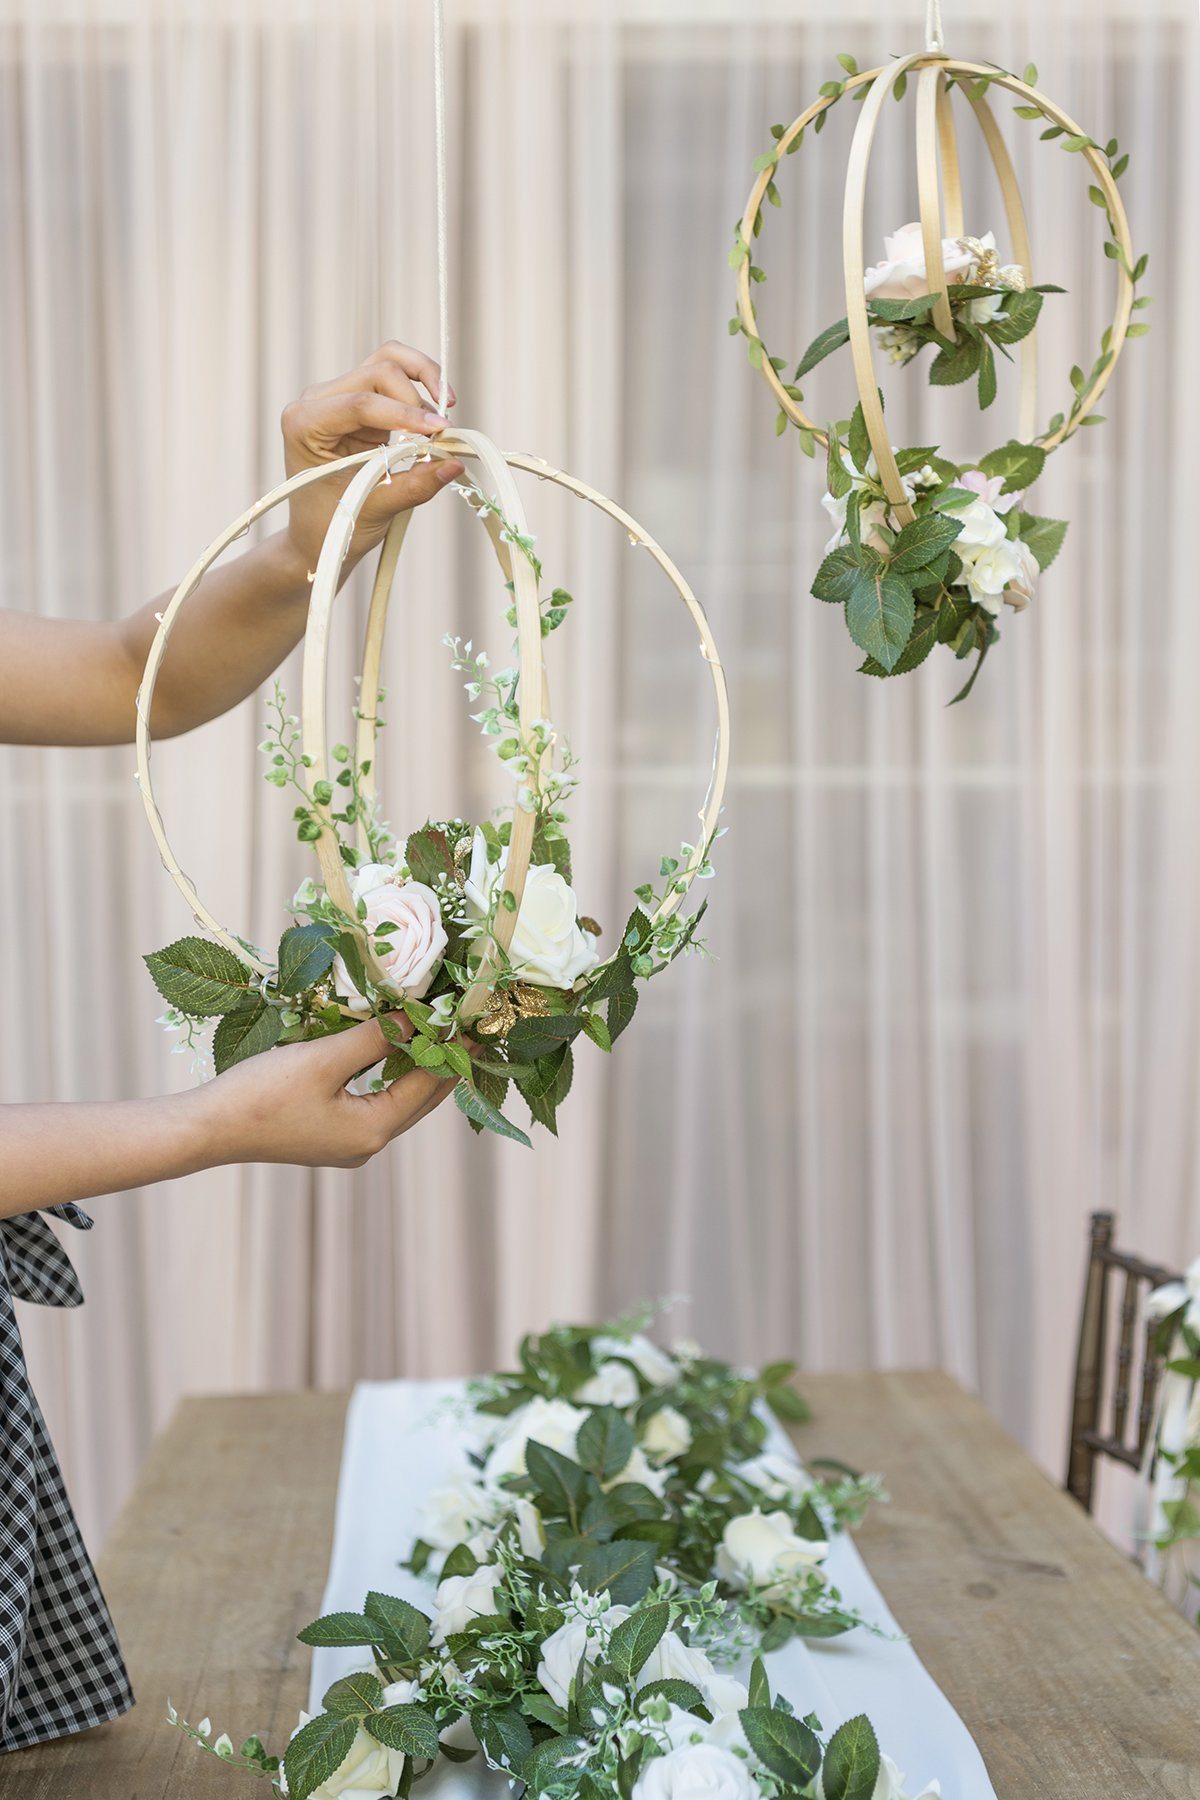 Lings-moment-Floral-Wreaths-Set-of-2-Blush-Rose-Artificial-Flower-Wreaths-for-Wedding-Party-Backdrop-Bridal-Shower-Baby-Shower-Hanging-Decor